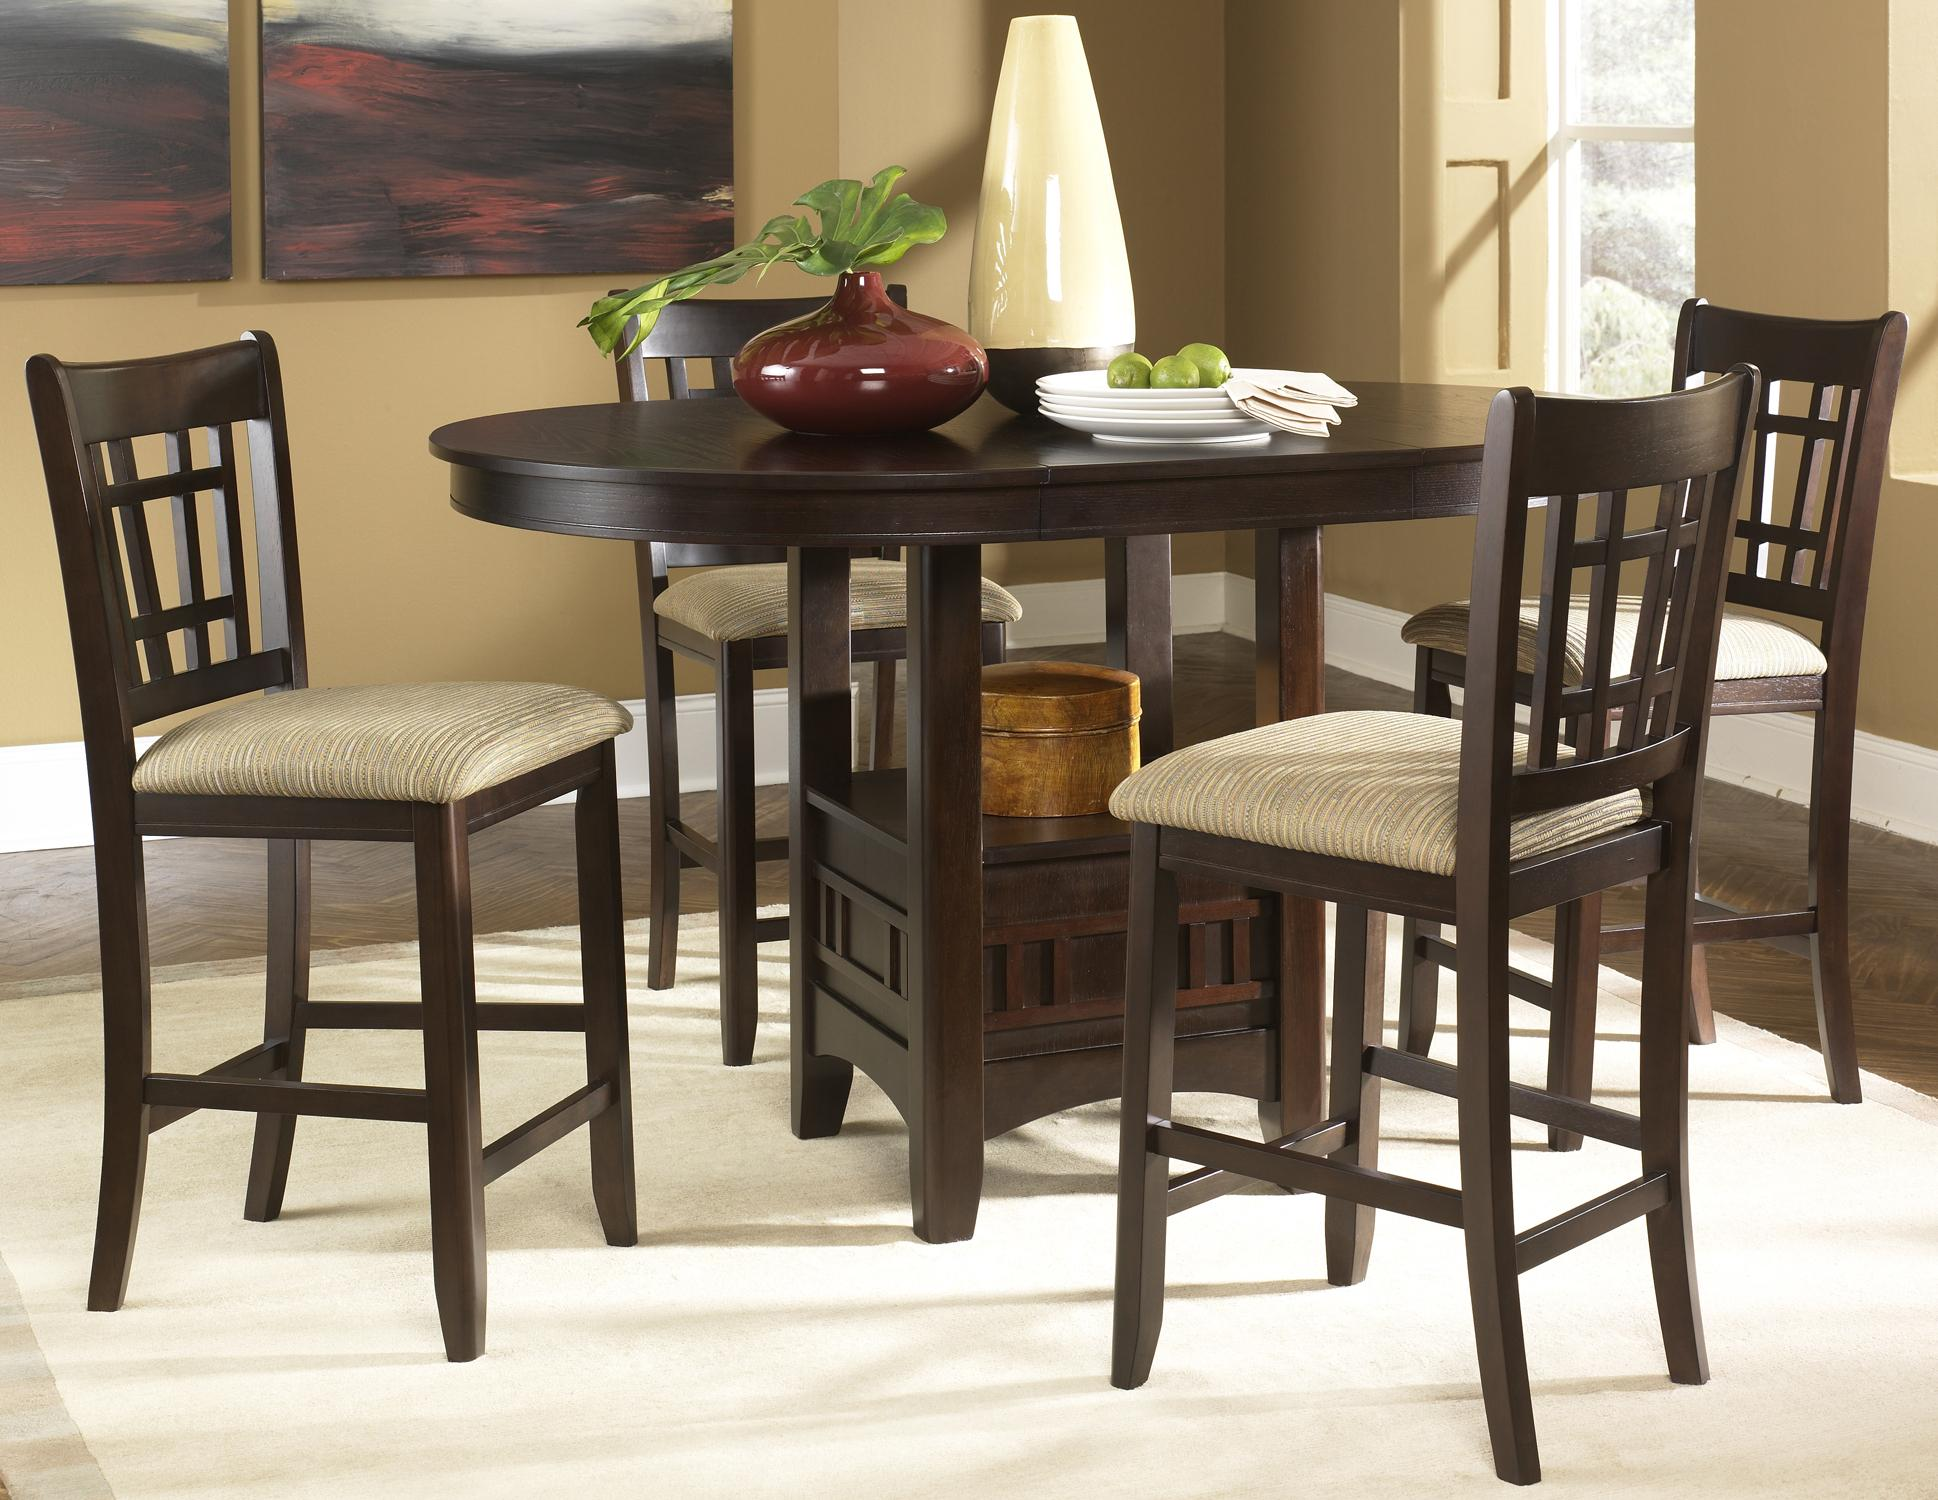 Bar Chairs And Table Sets Part - 17: Oval Pub Table U0026 24 Inch Upholstered Bar Stool Set